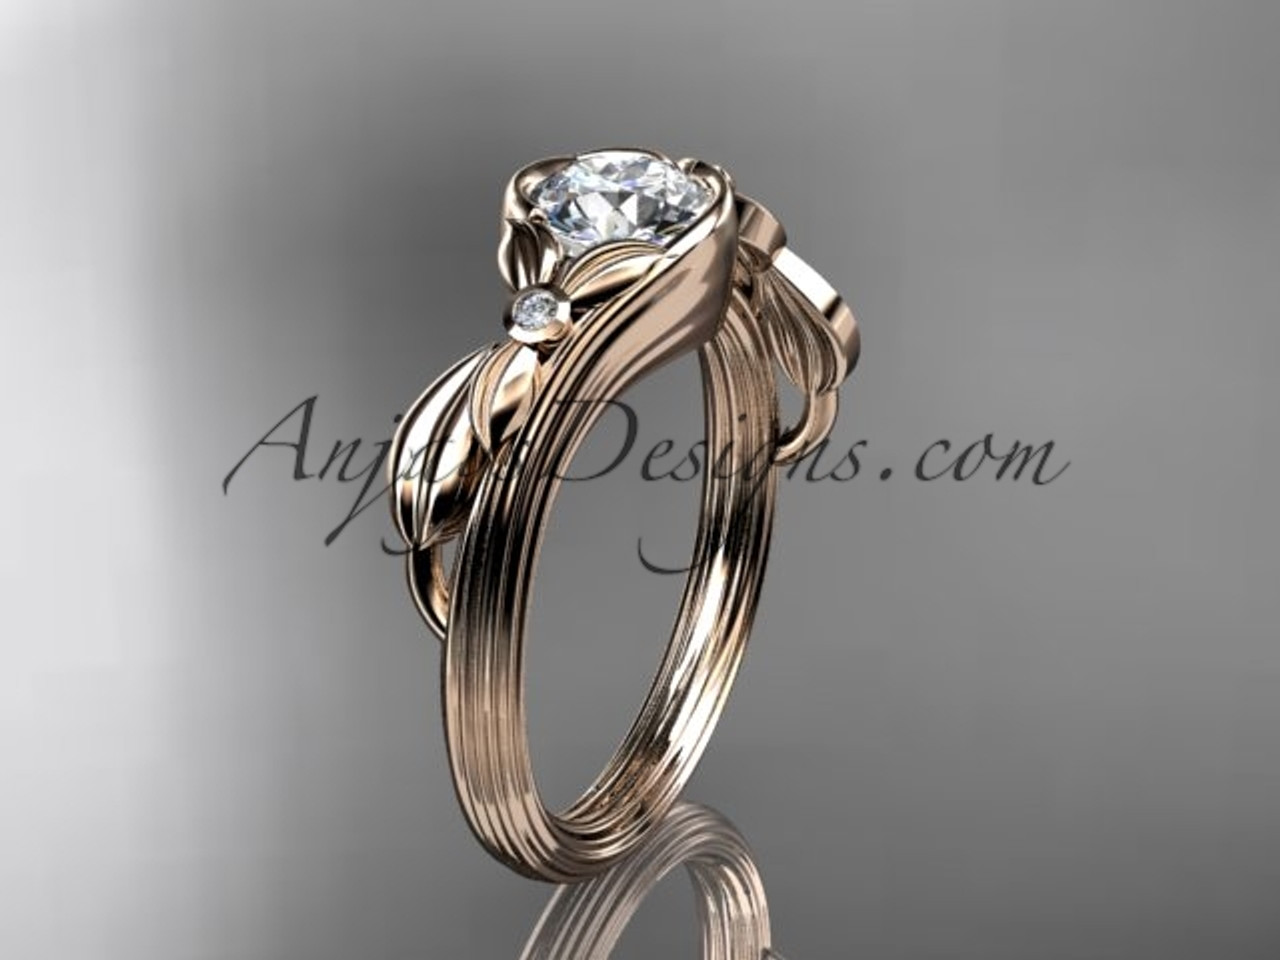 Unique 14kt Rose Gold Floral Engagement Ring With A Forever One Moissanite Center Stone Adlr324